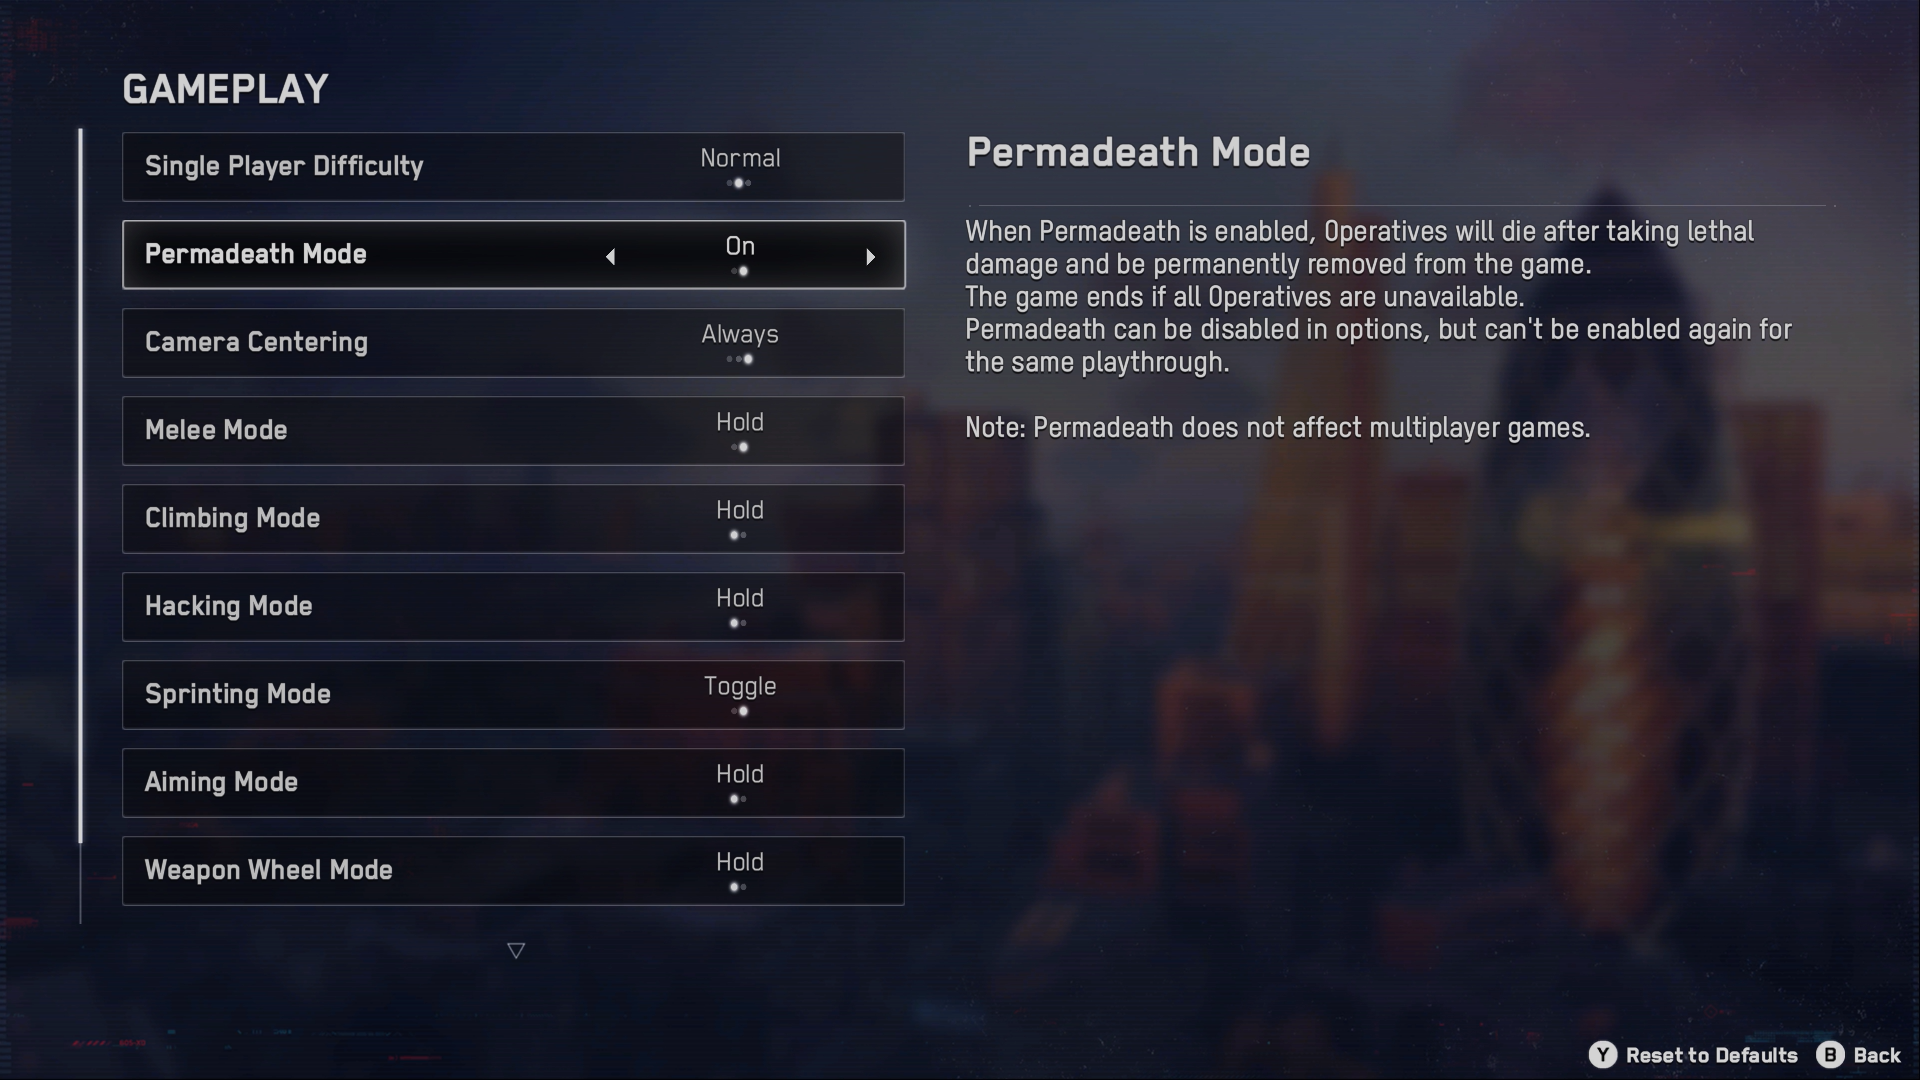 A screenshot of the Watch Dogs legion Gameplay menu, with Permadeath Mode option highlighted currently.